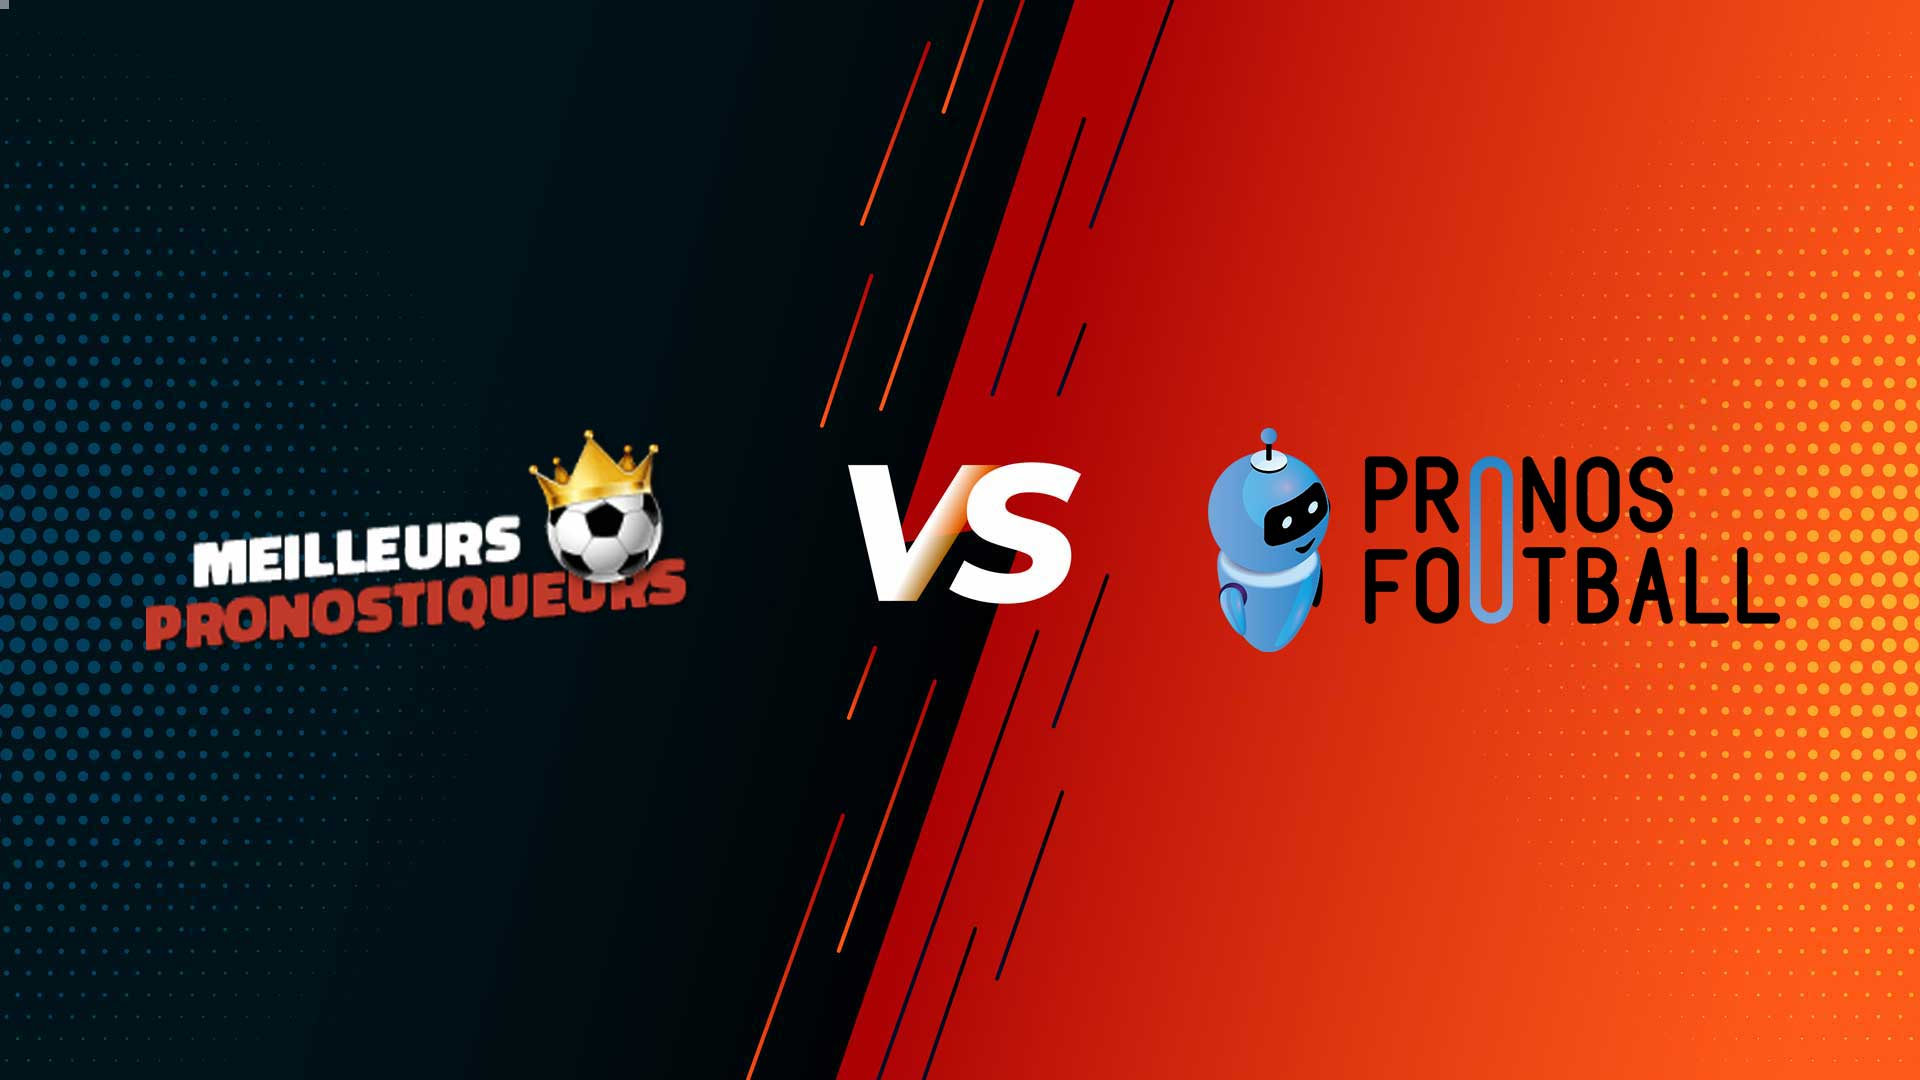 PRONOS FOOTBALL – Avis du pronostiqueur